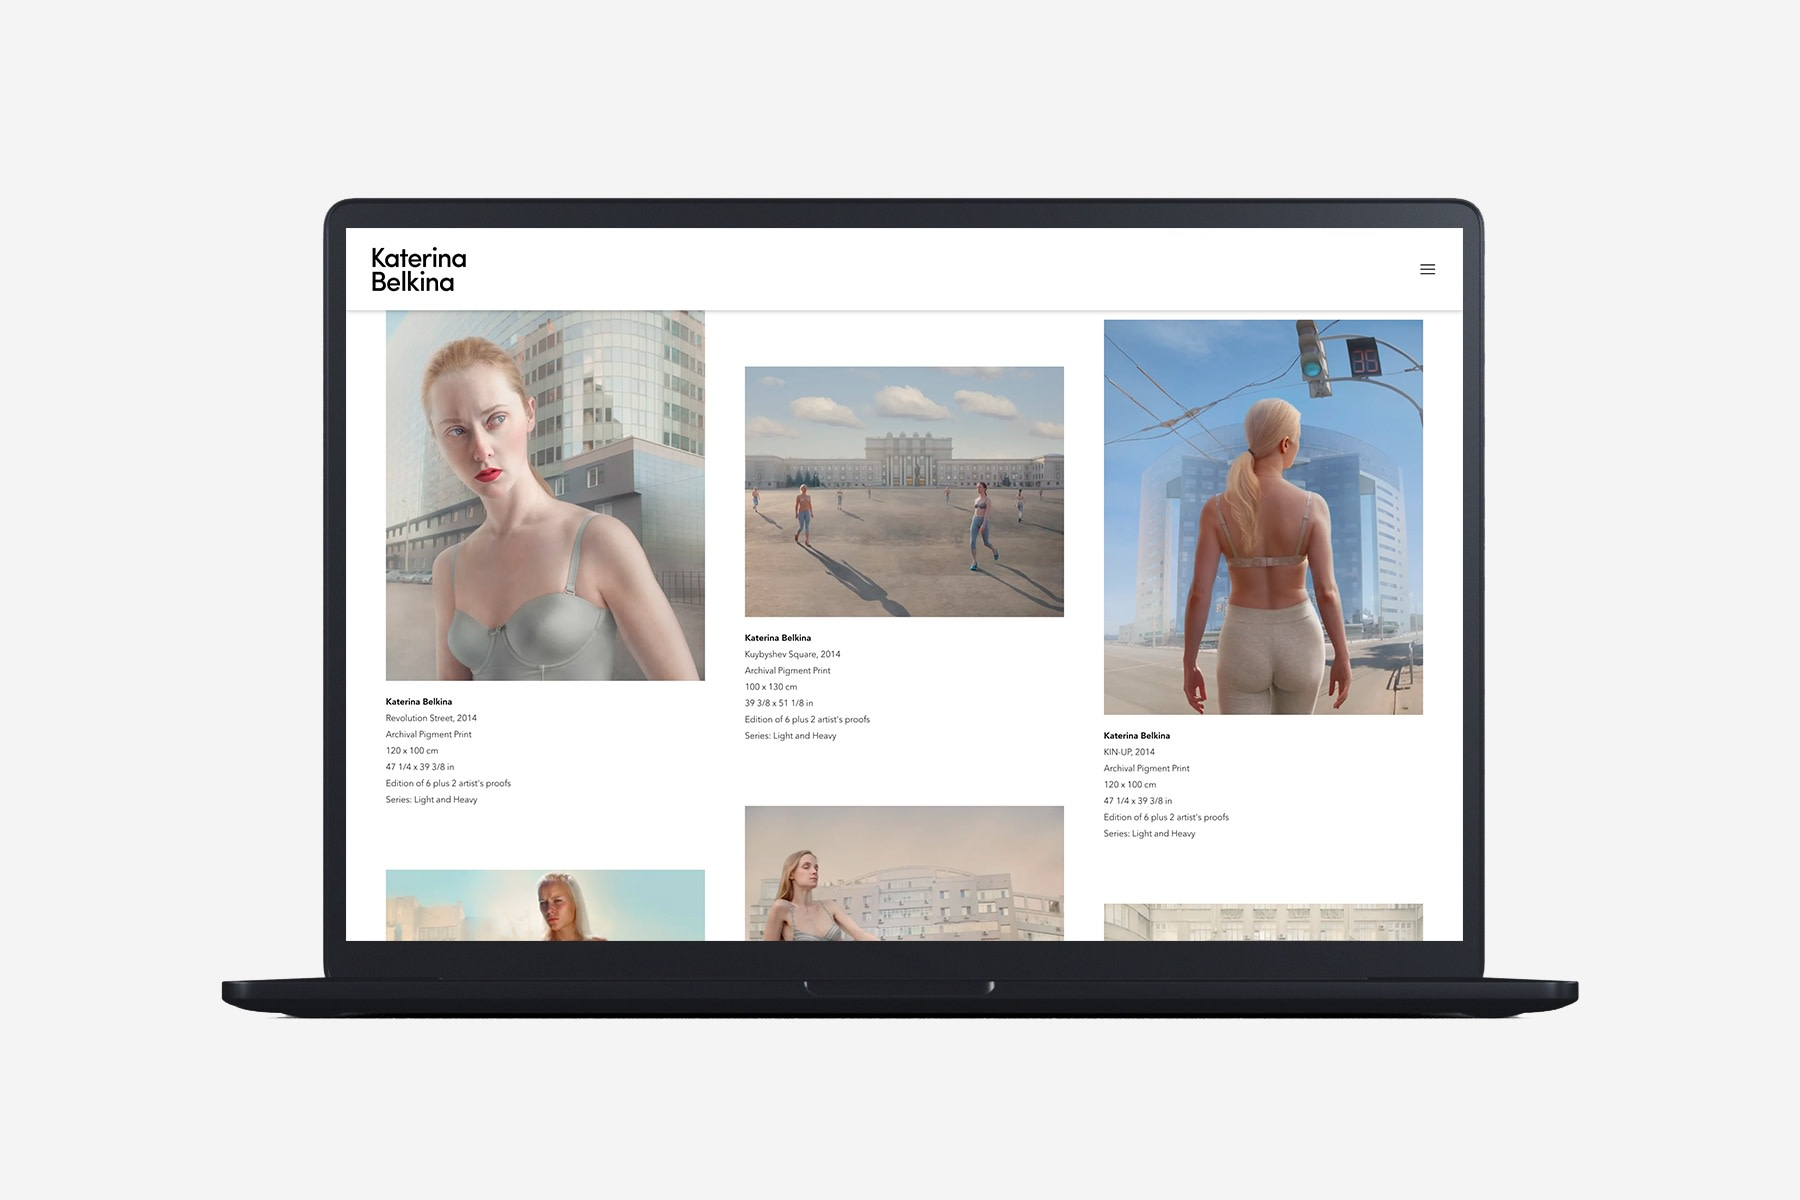 Laptop with example page of Katerina Belkina website